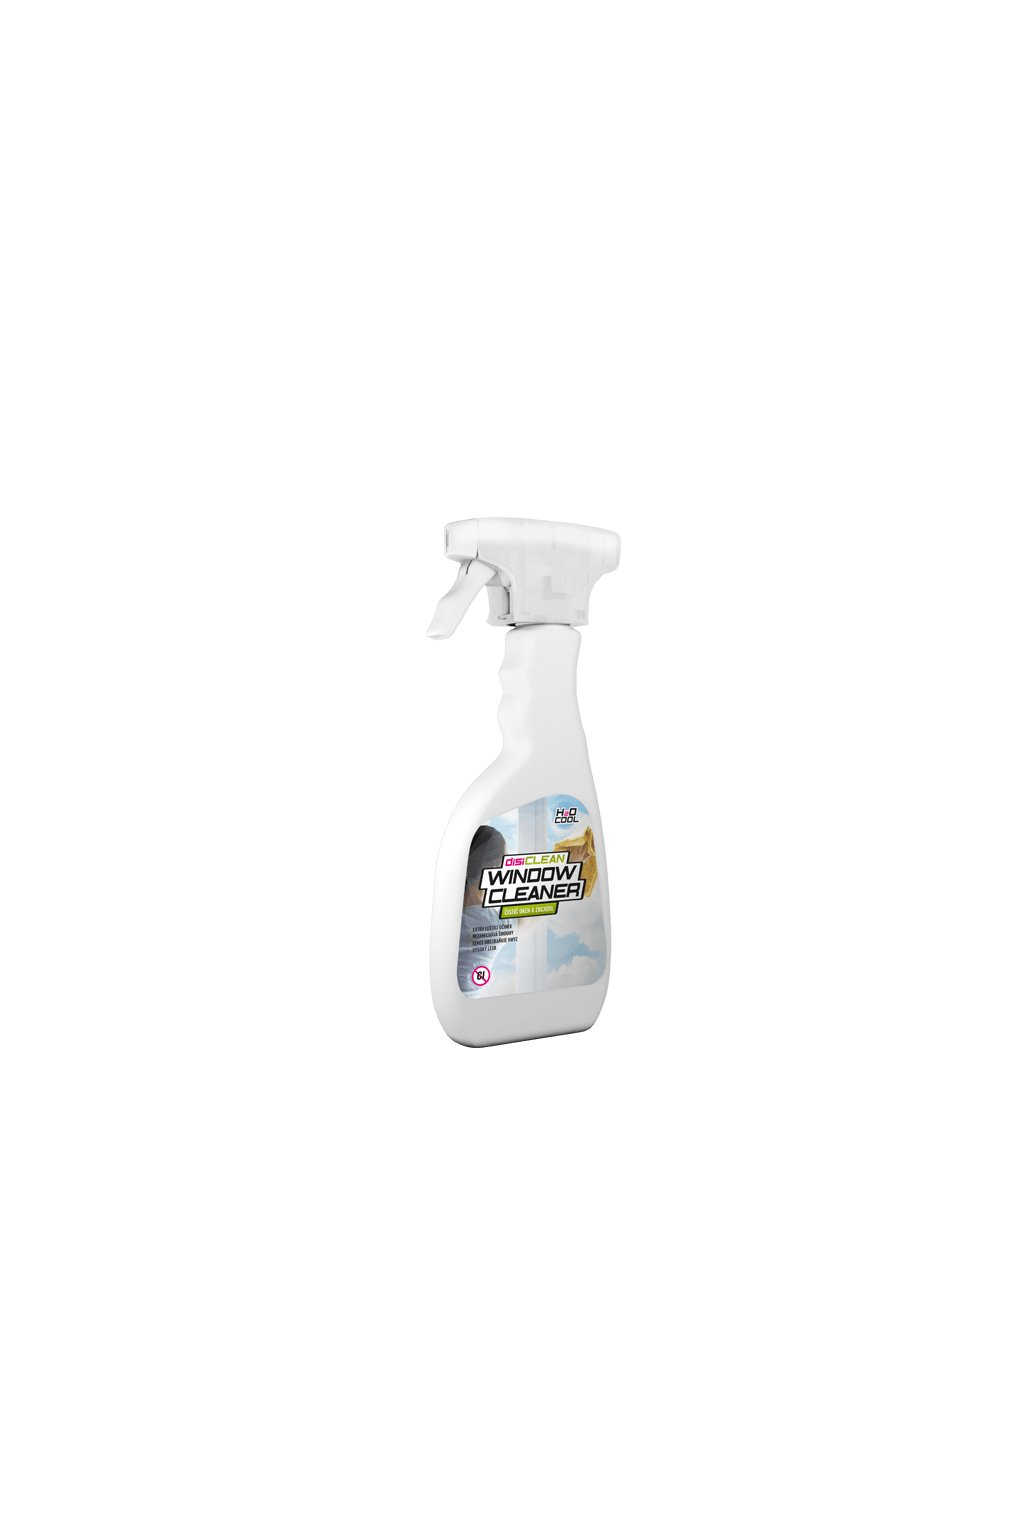 31 disiclean window cleaner 0 5l